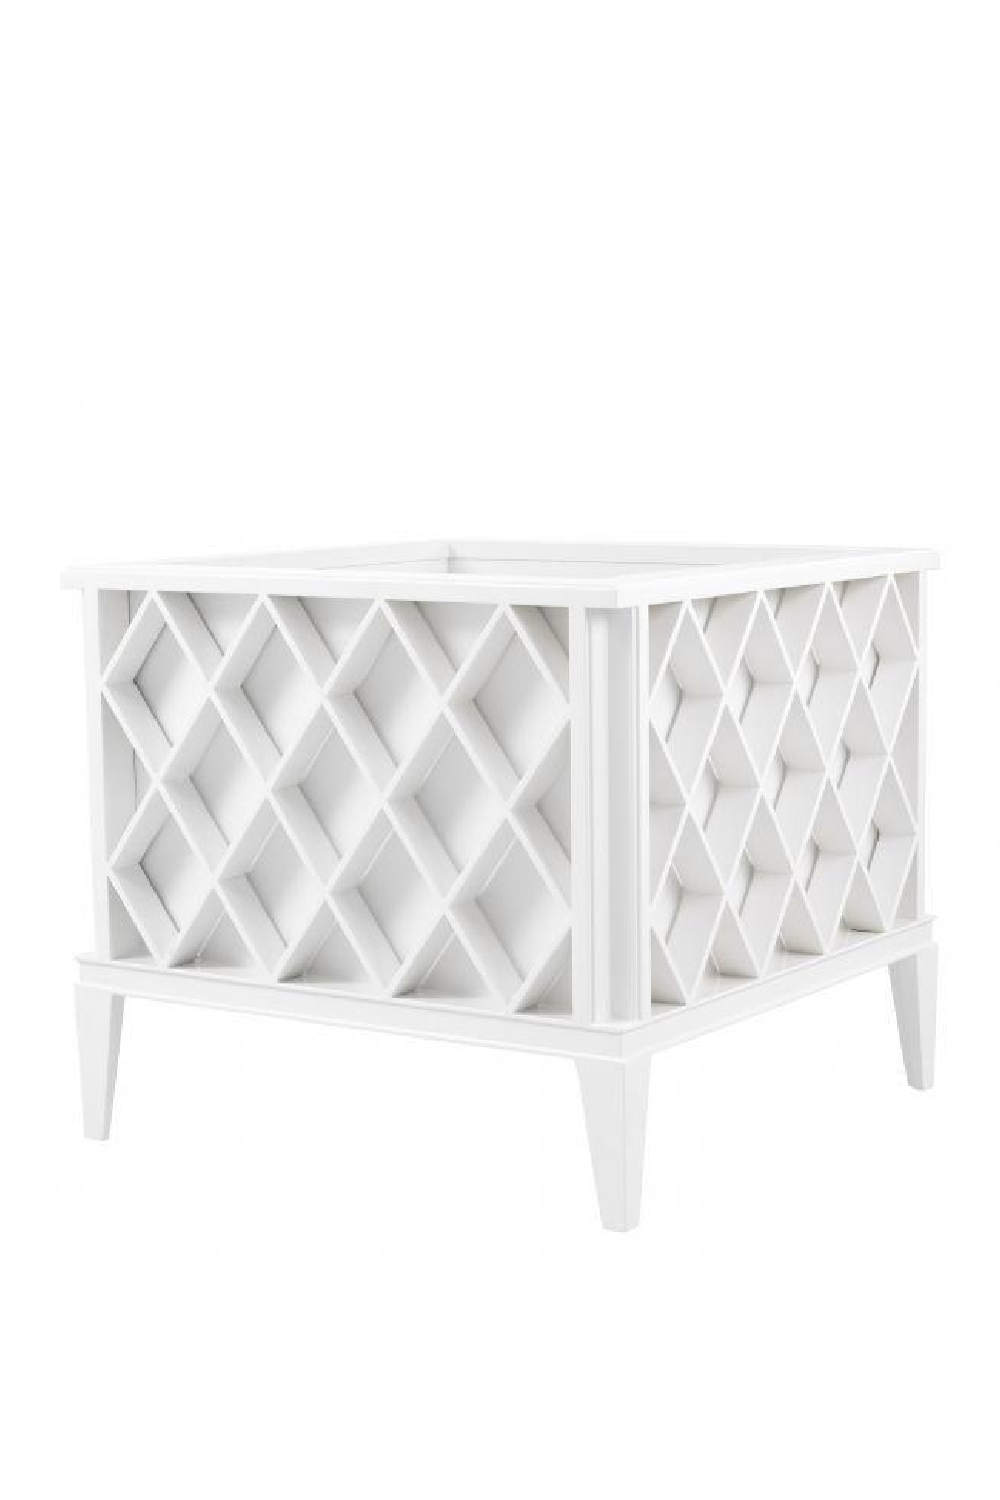 White Lacquer Planter | Eichholtz Ocean Club | OROA - Patio Furniture